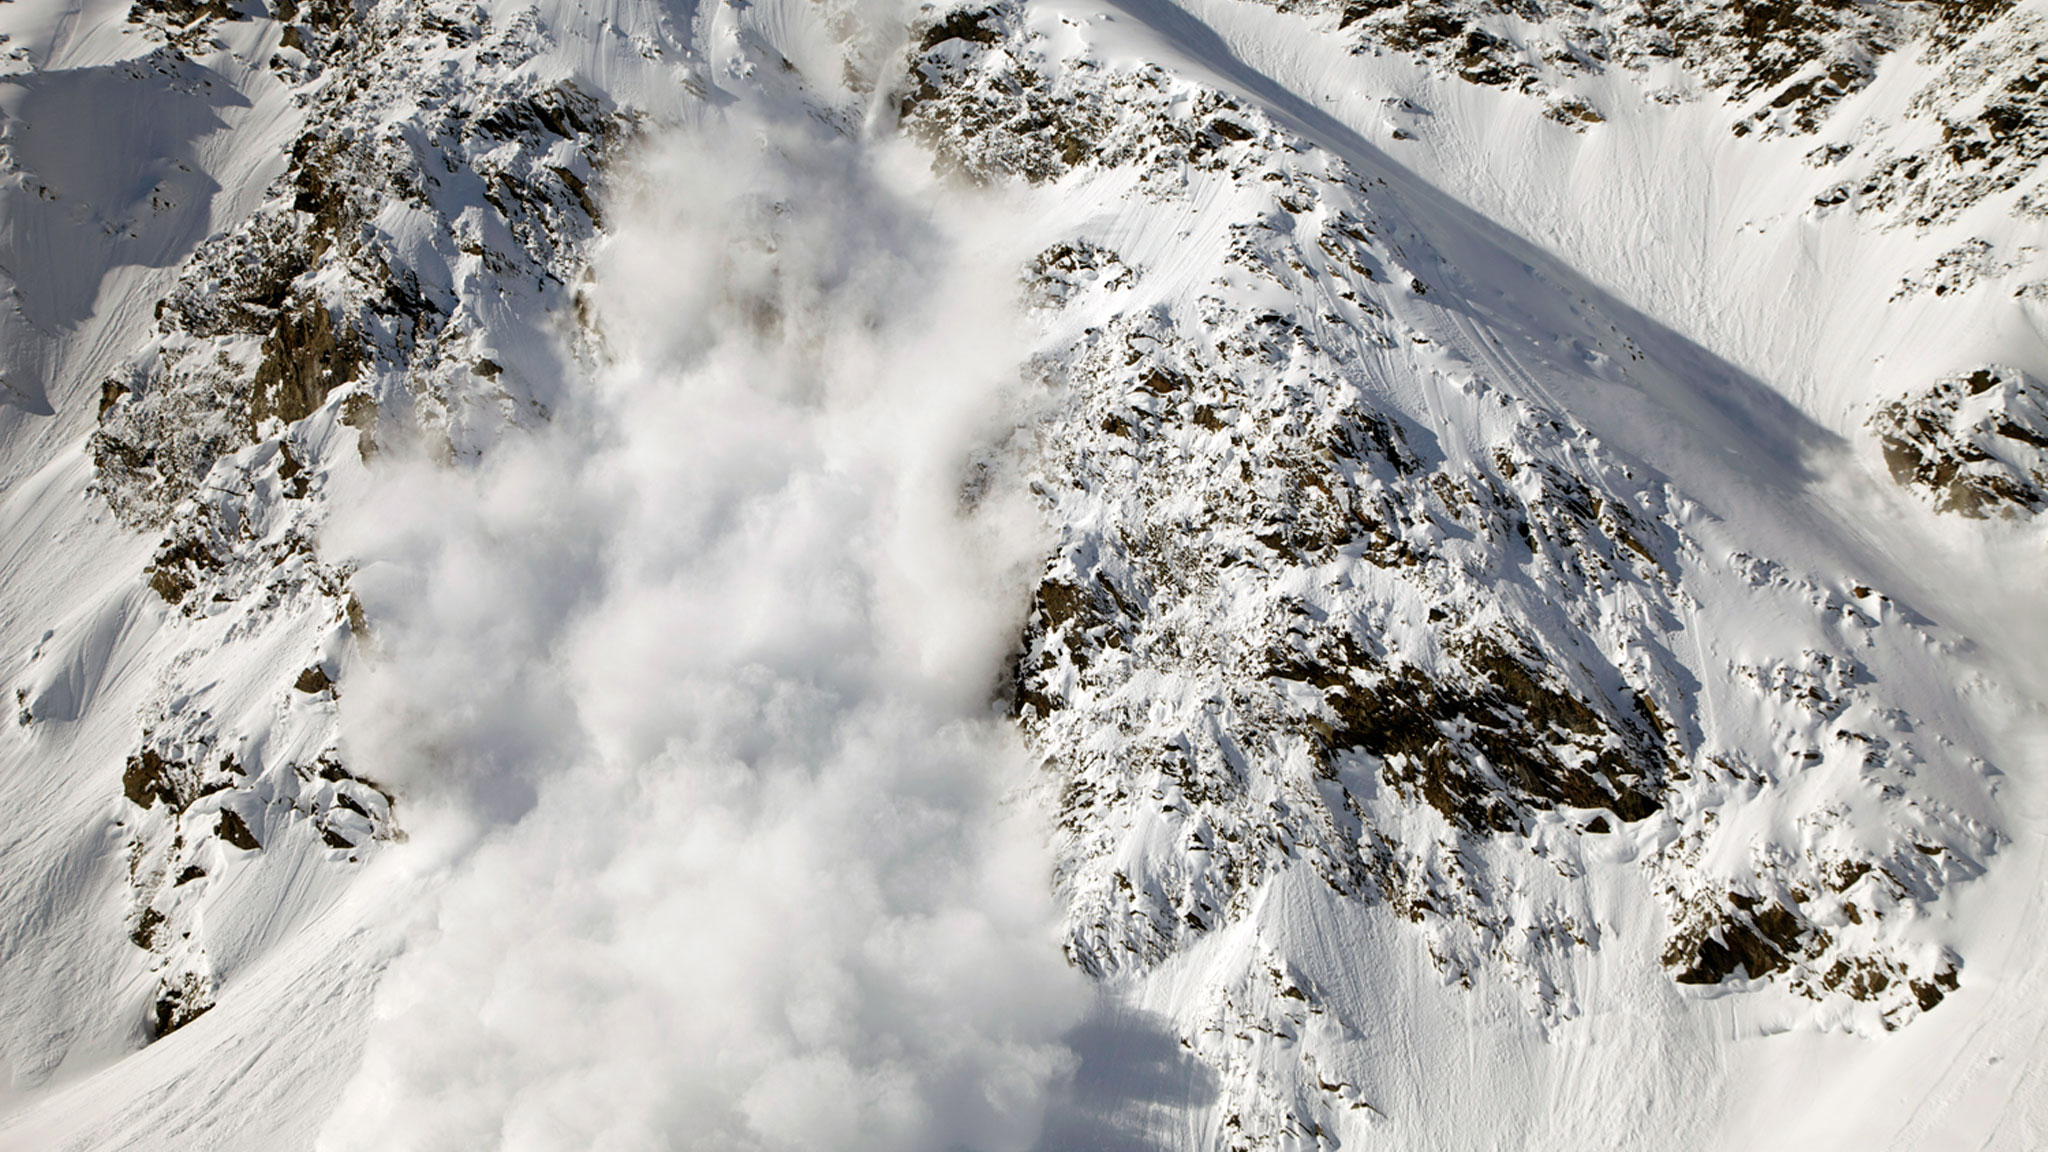 Project Zero hopes to drastically reduce the number of avalanche fatalities.